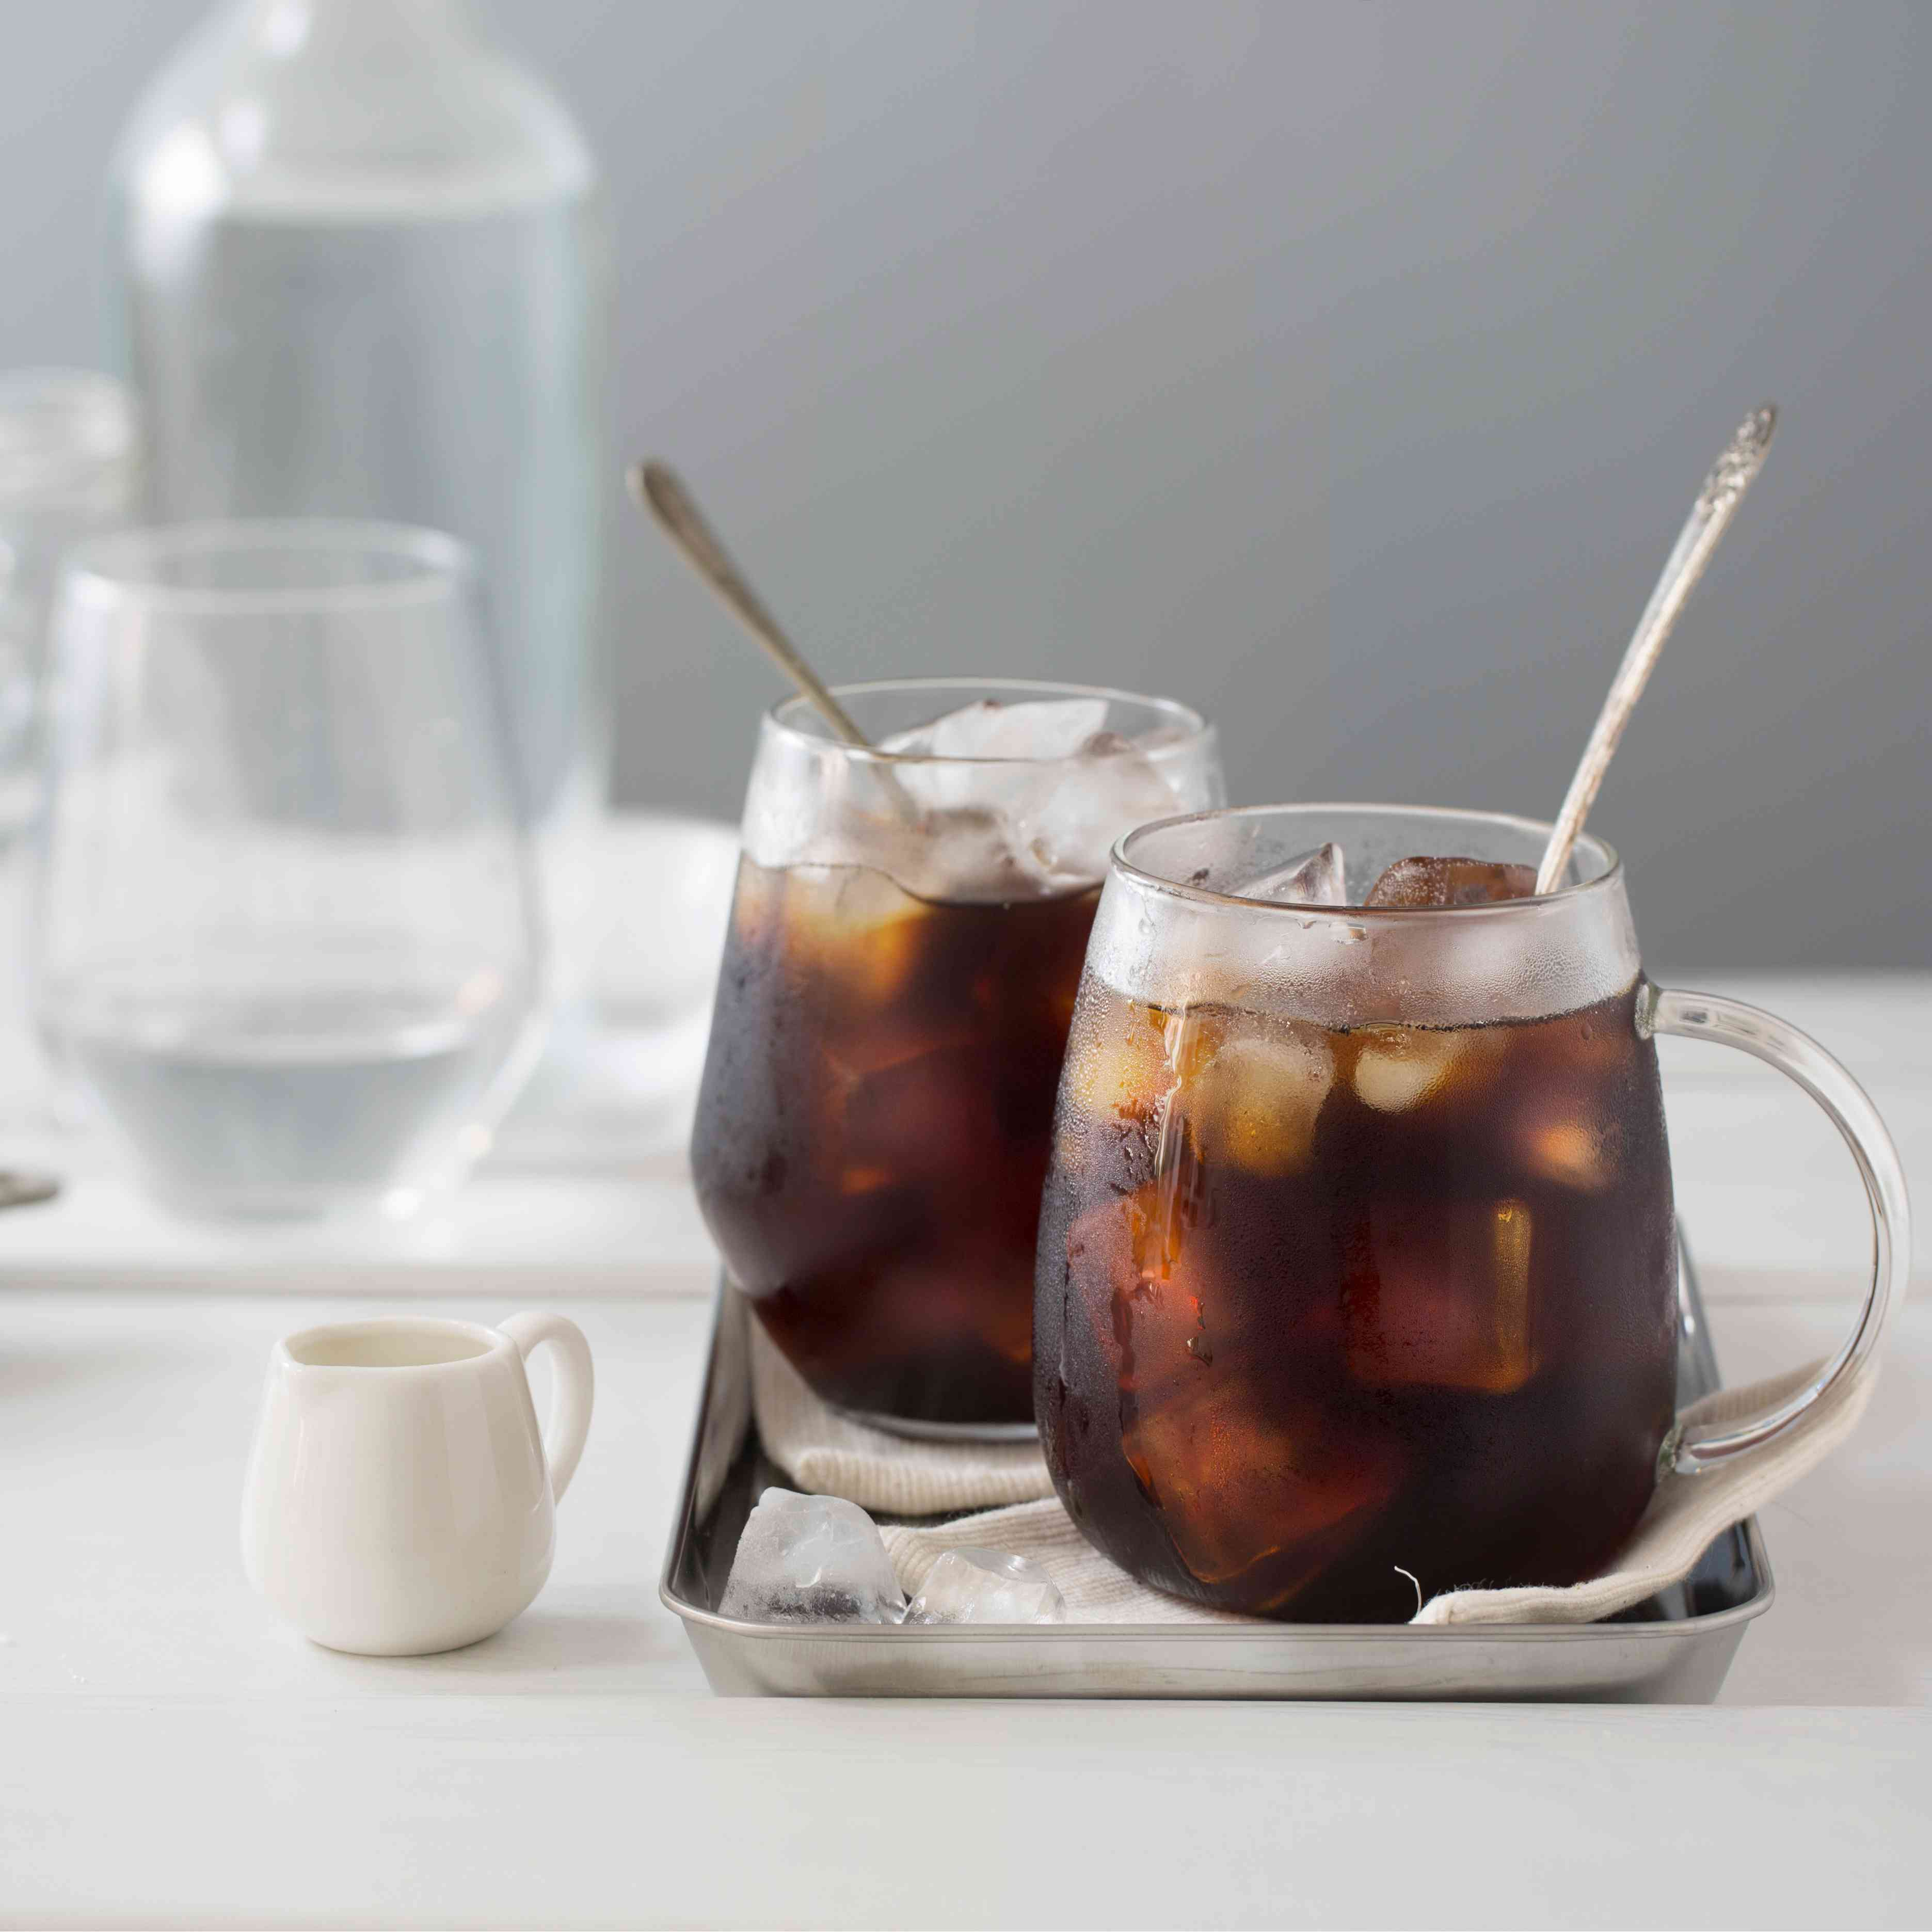 Beverages in clear glasses with ice cubes